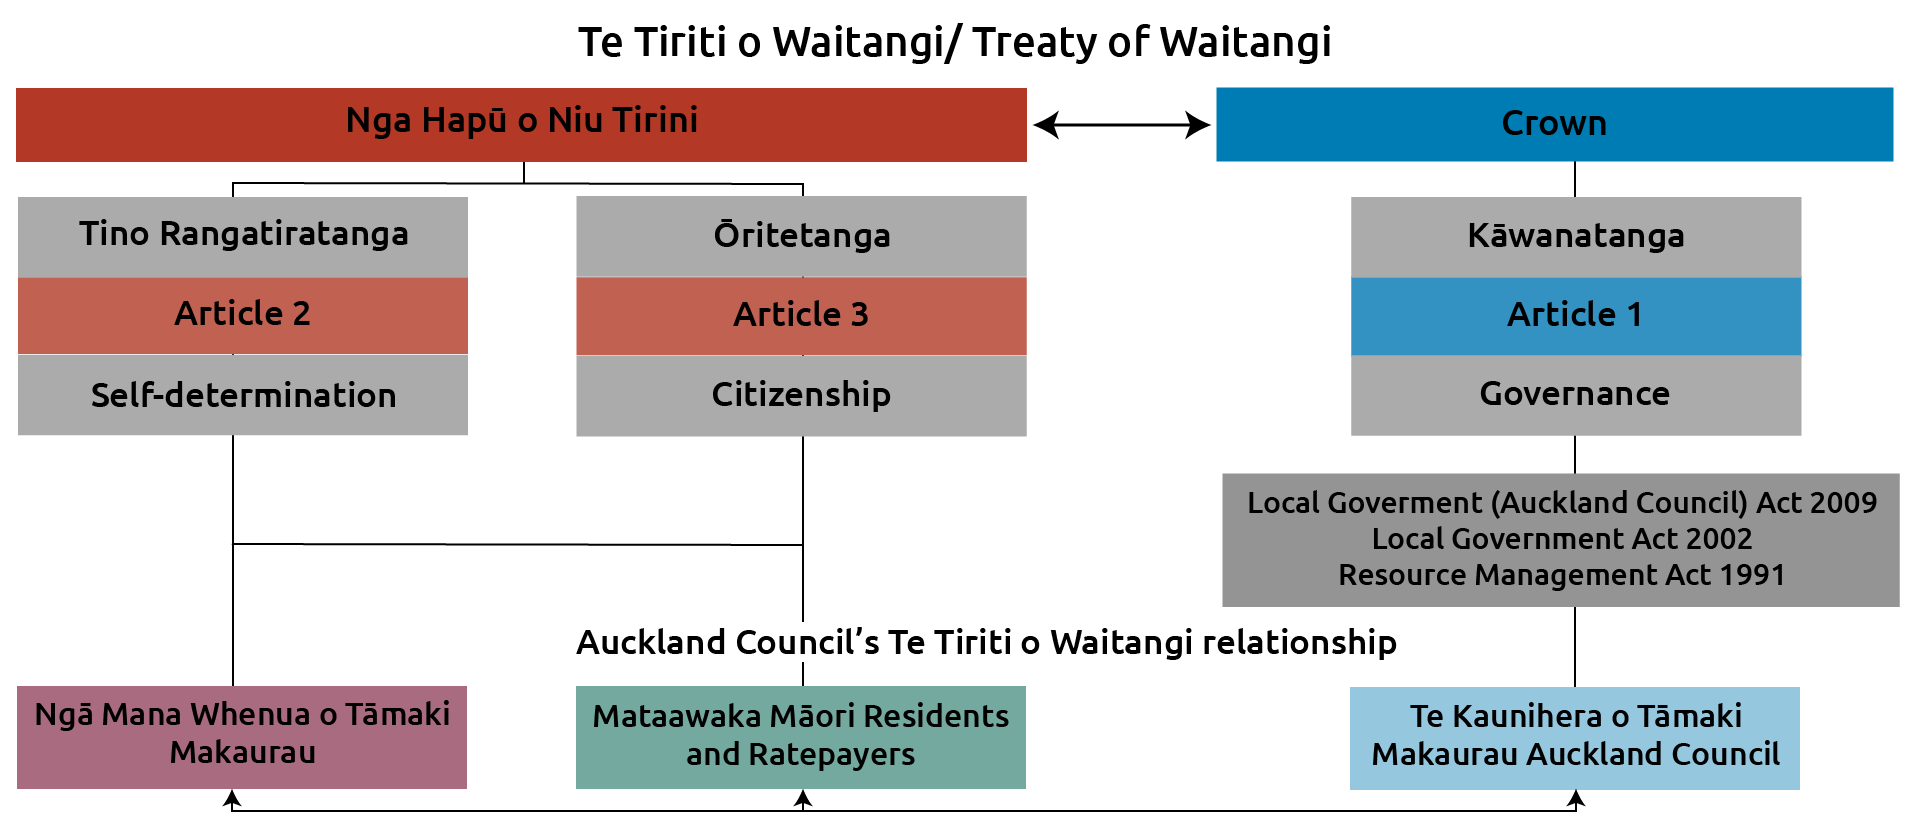 Diagram showing the relationship between Auckland Council and the Crown.